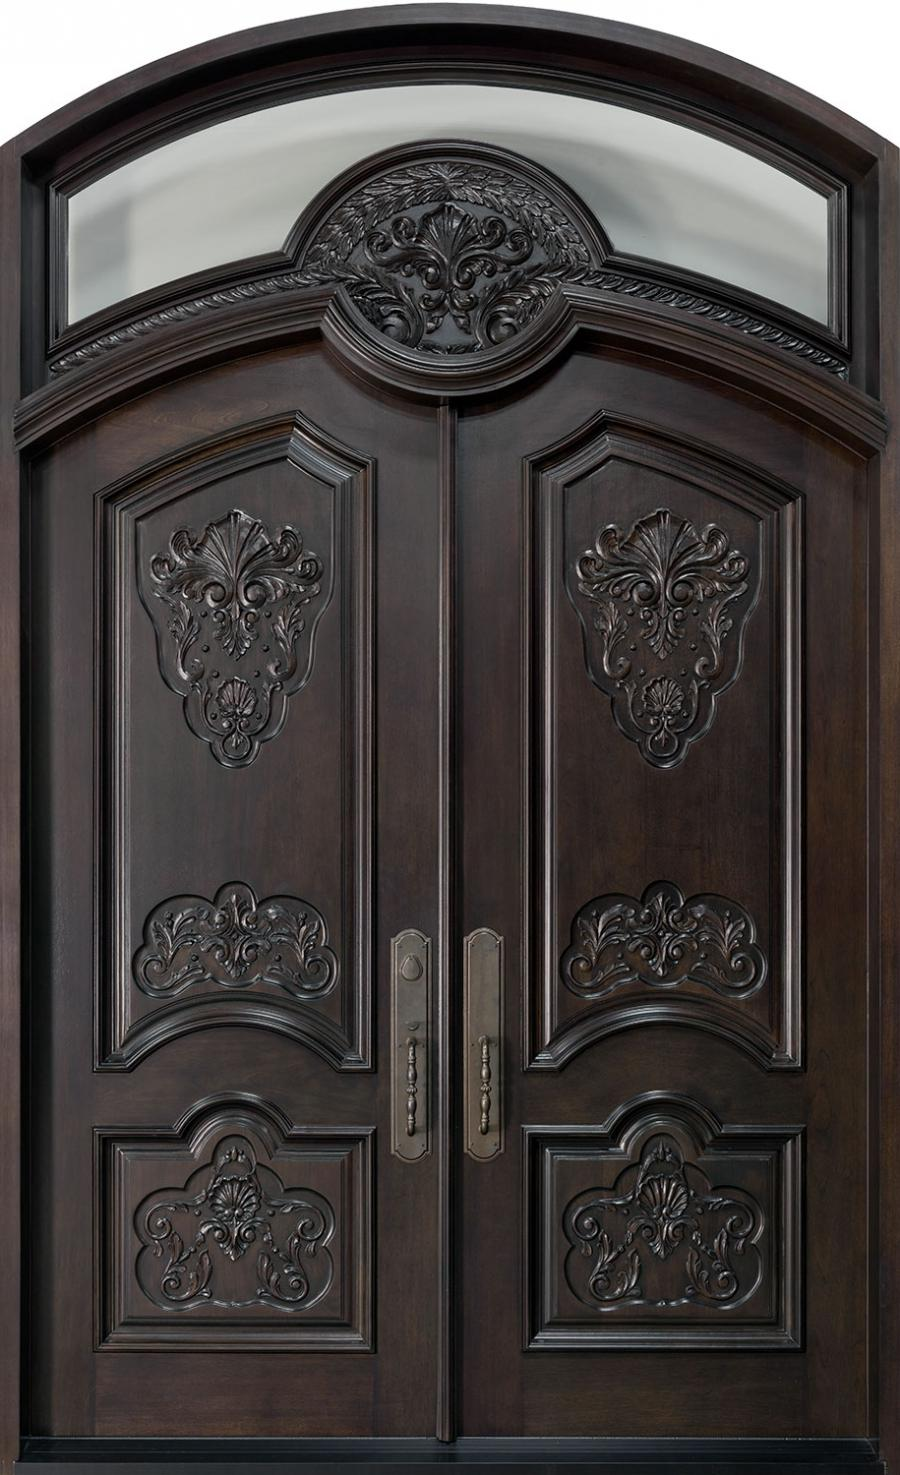 Wood carving door photos